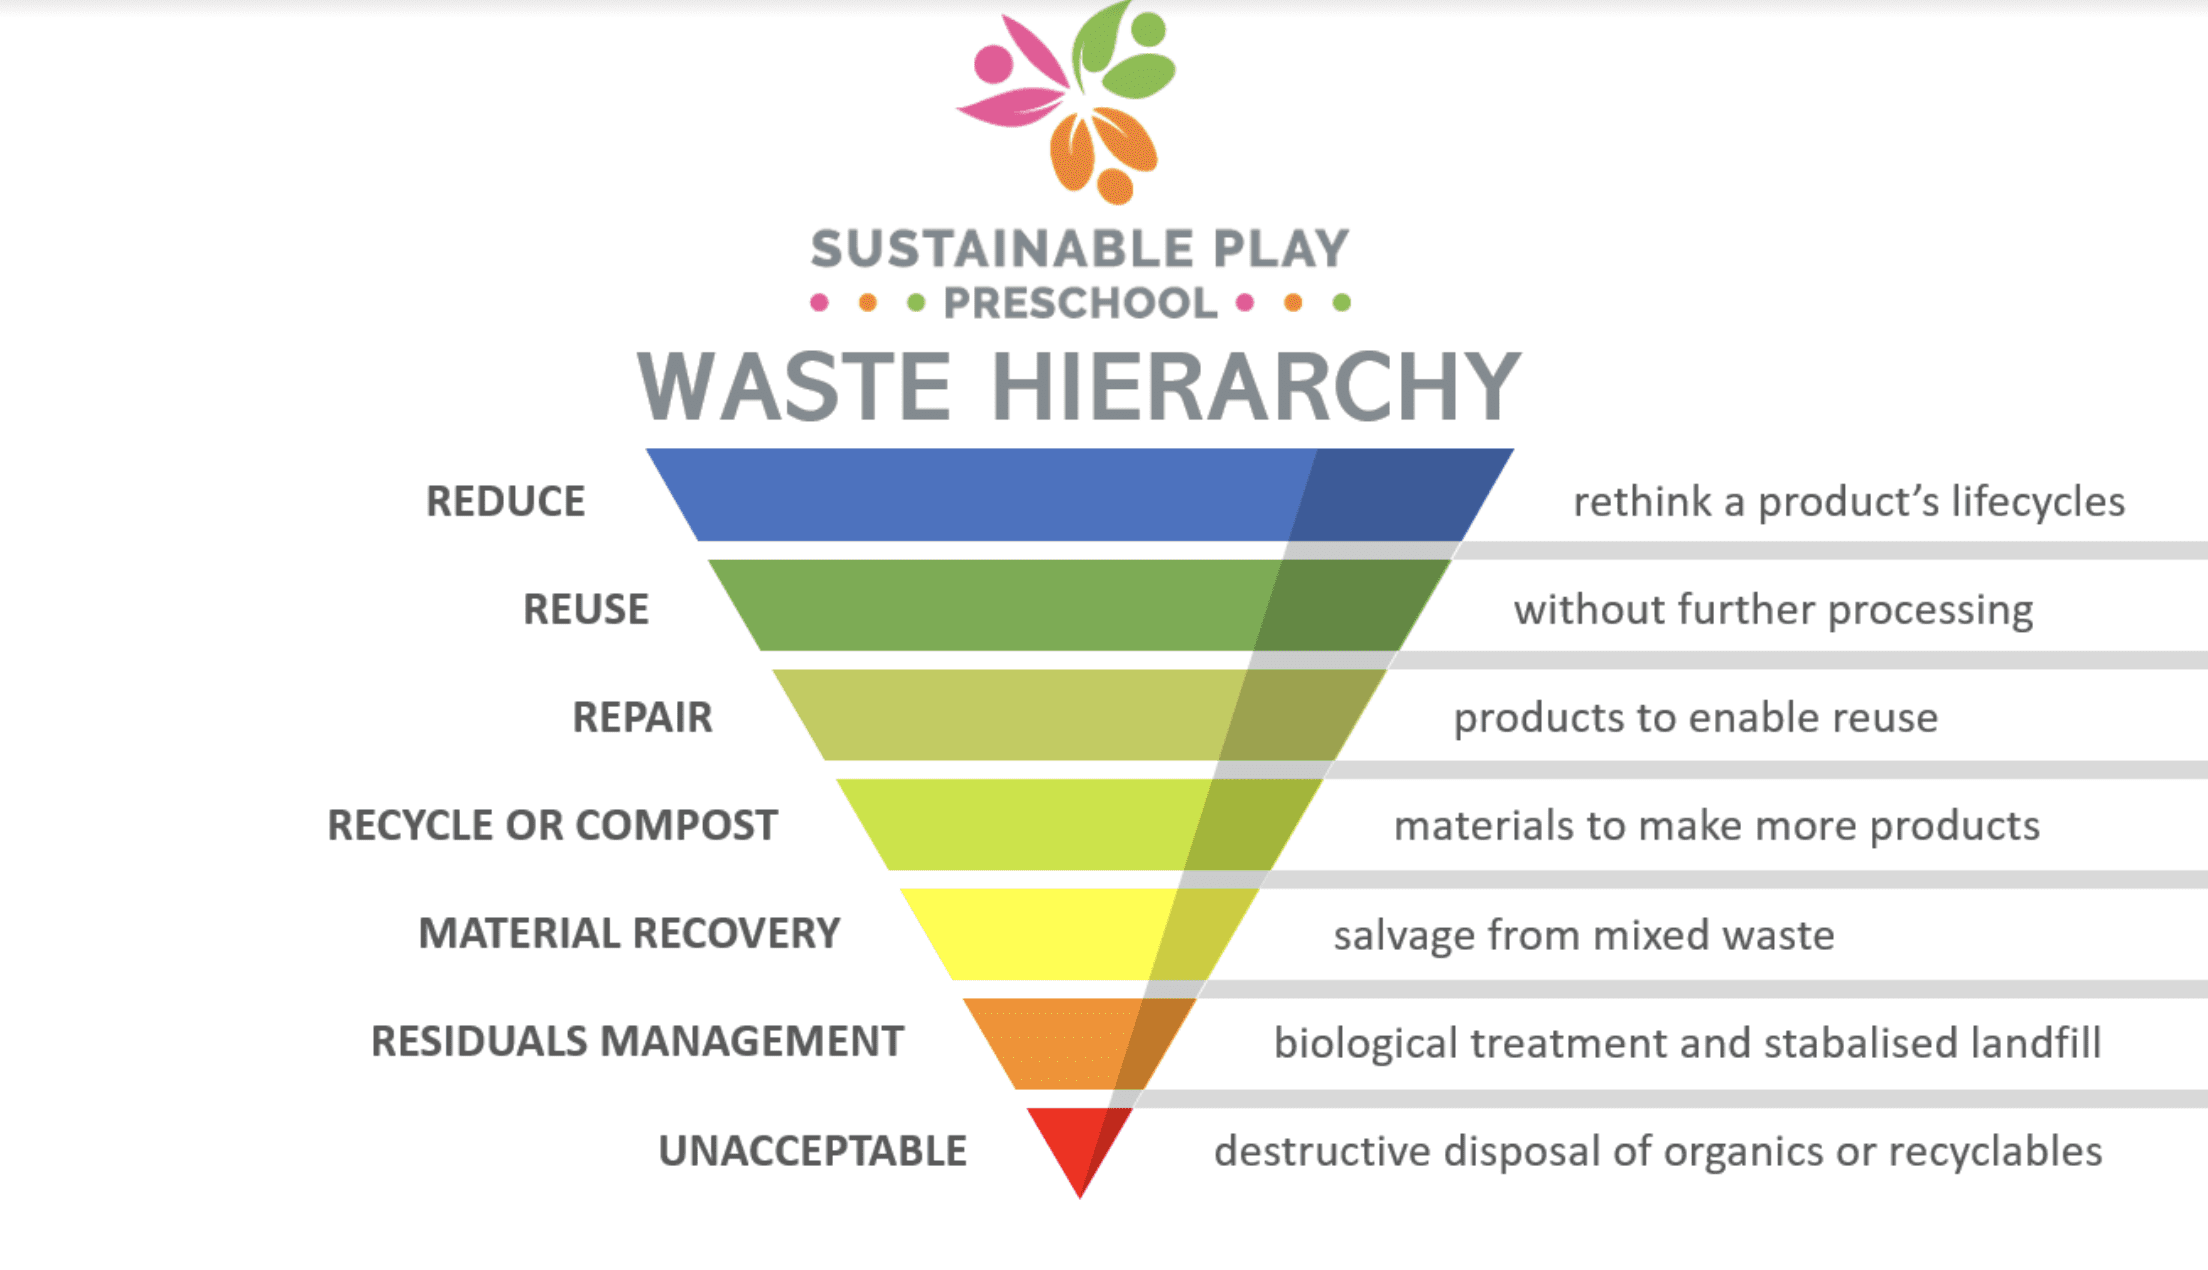 sustainable play preschool waste heirachy